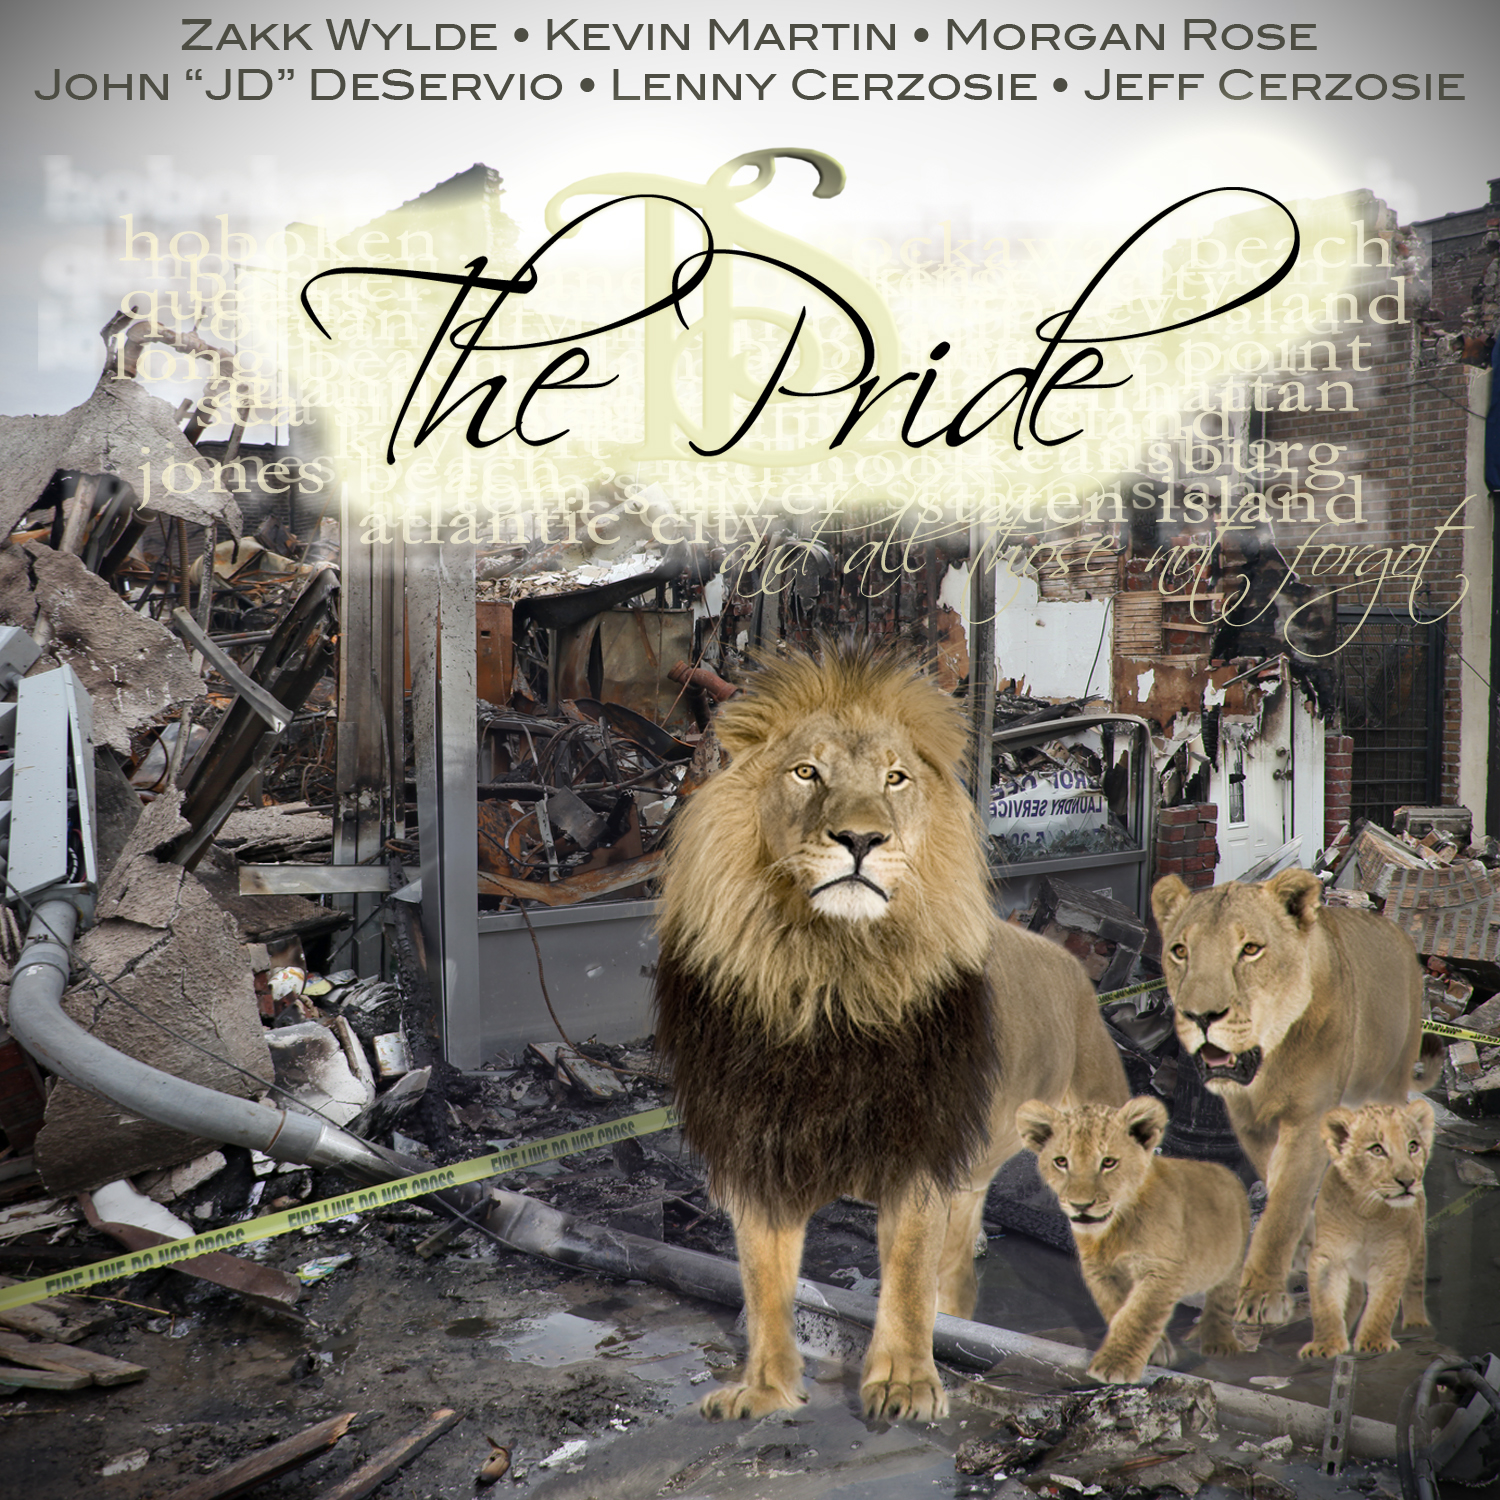 "PRE-ORDER ""THE PRIDE"" FEATURING ZAKK WYLDE, KEVIN MARTIN, MORGAN ROSE, JD DESERVIO & THE INFINITE STAIRCASE"